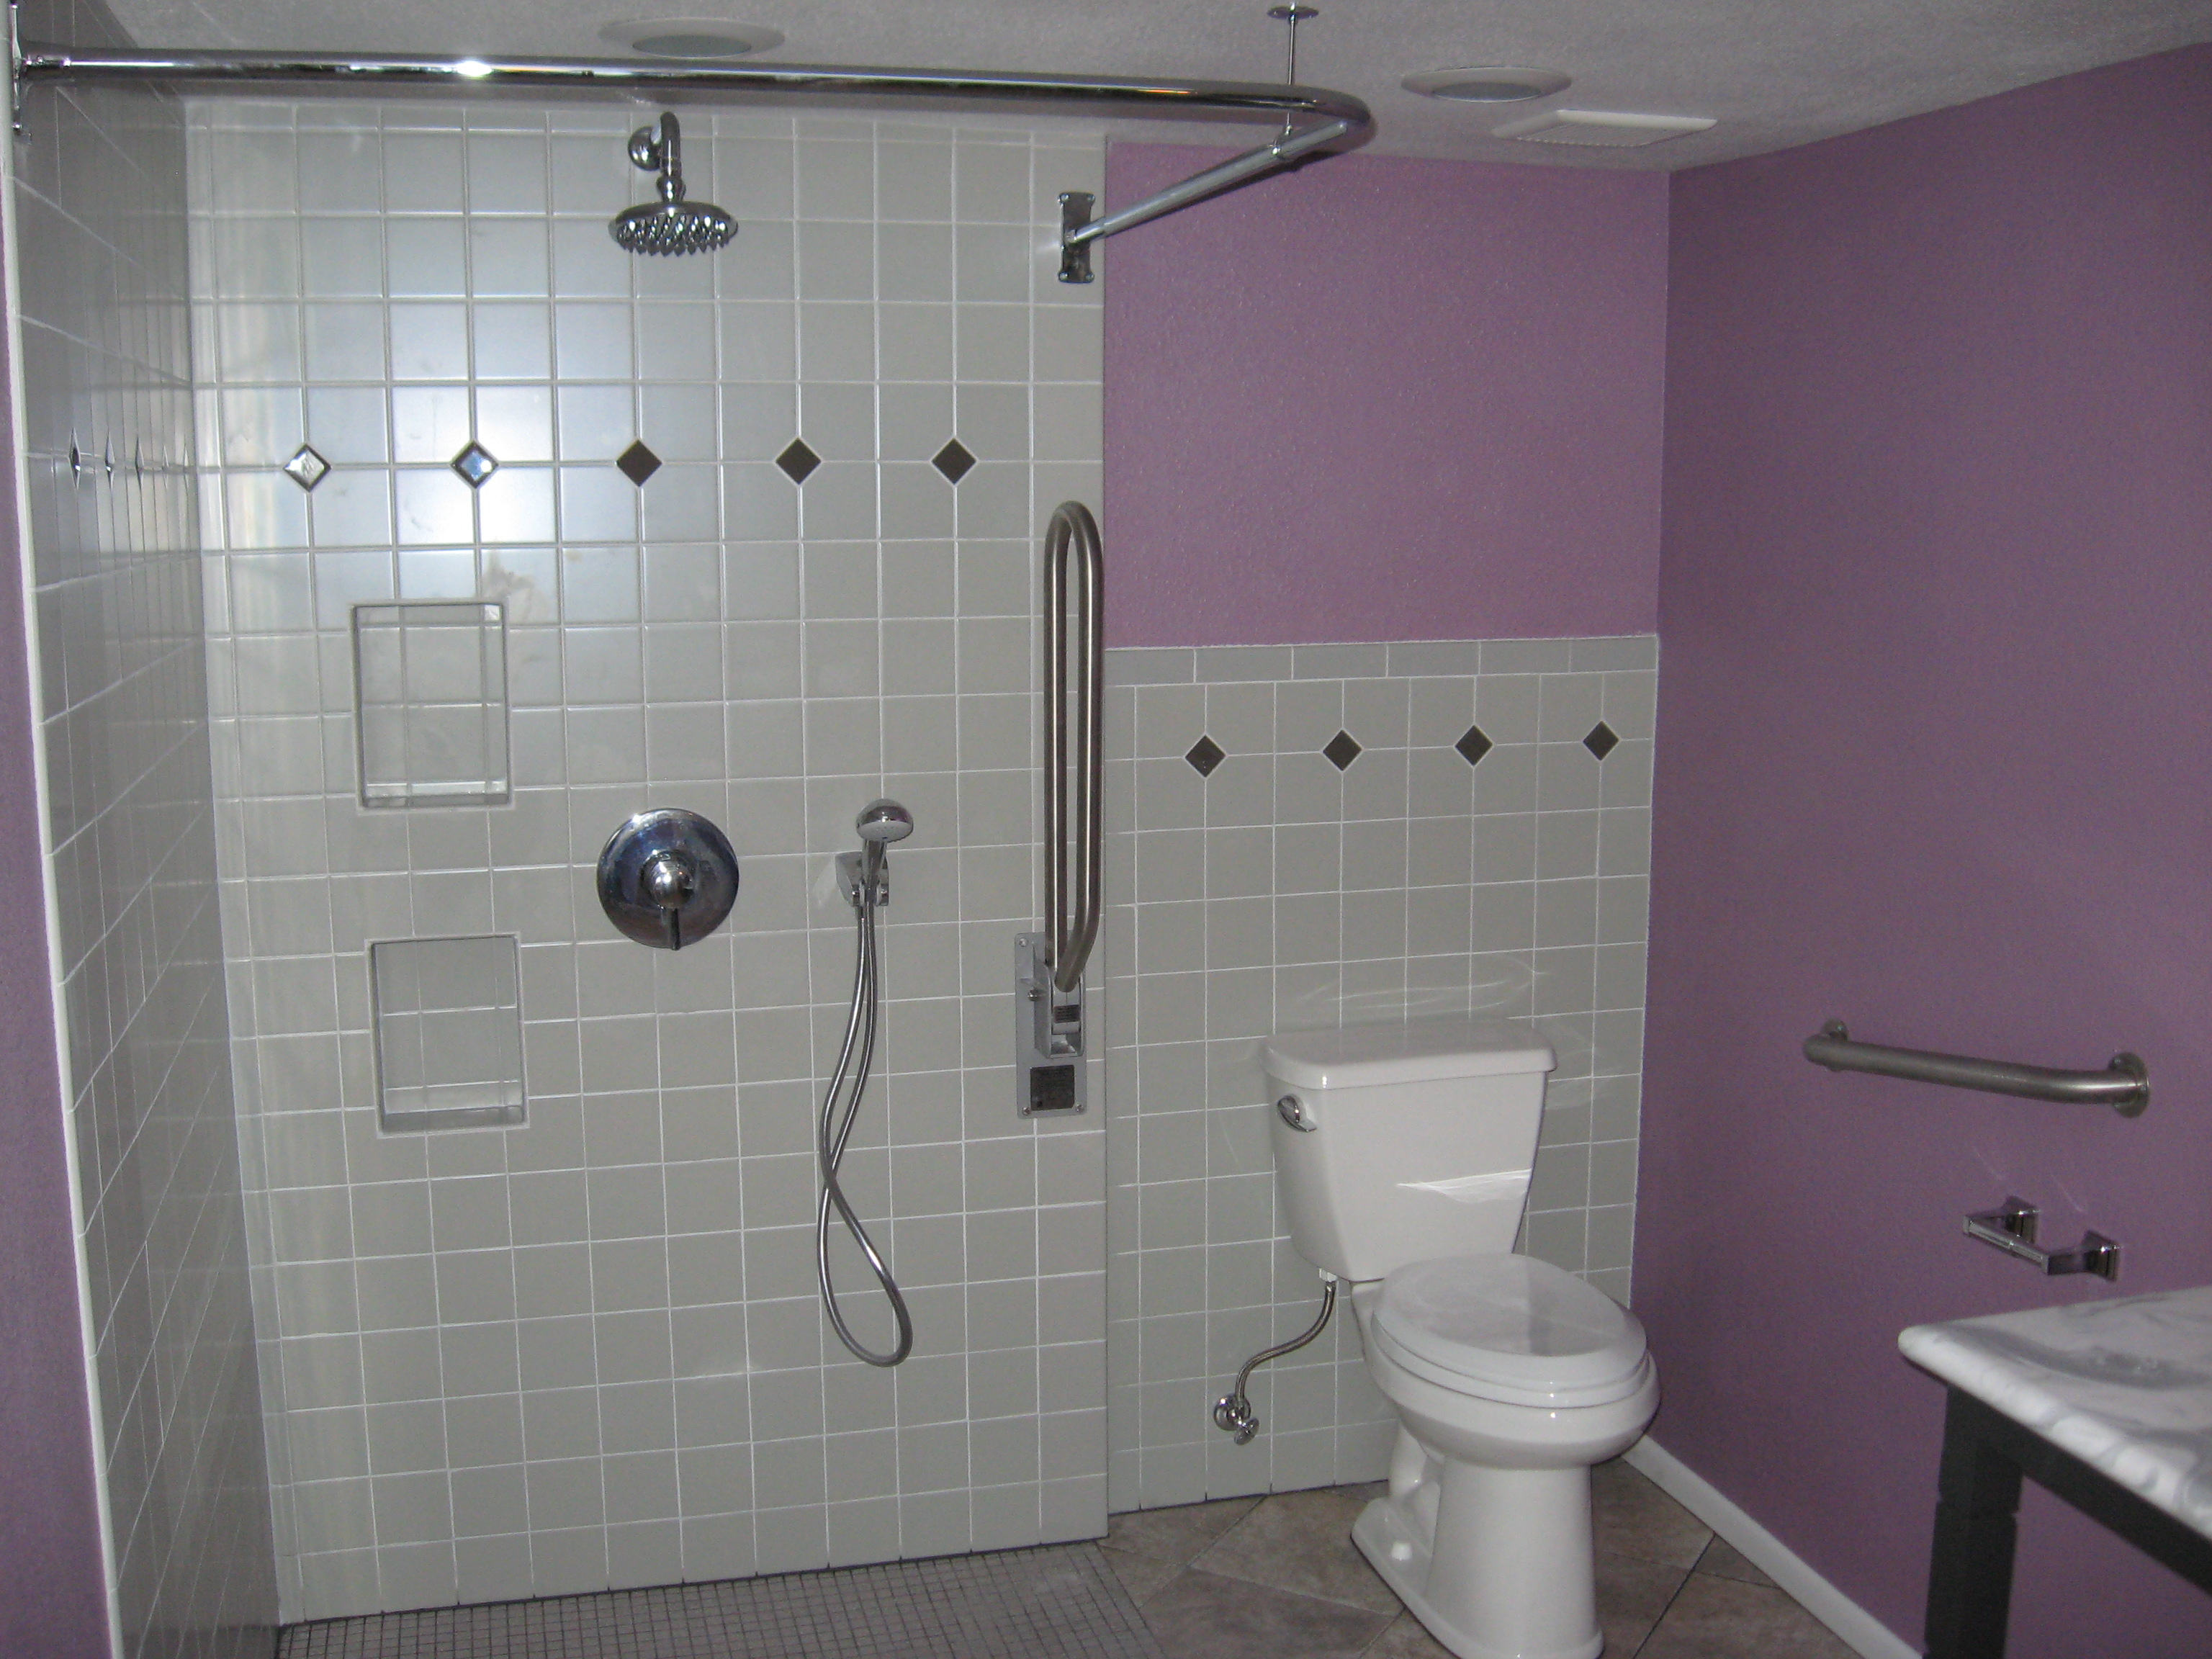 tiled bathroom shower and toilet image